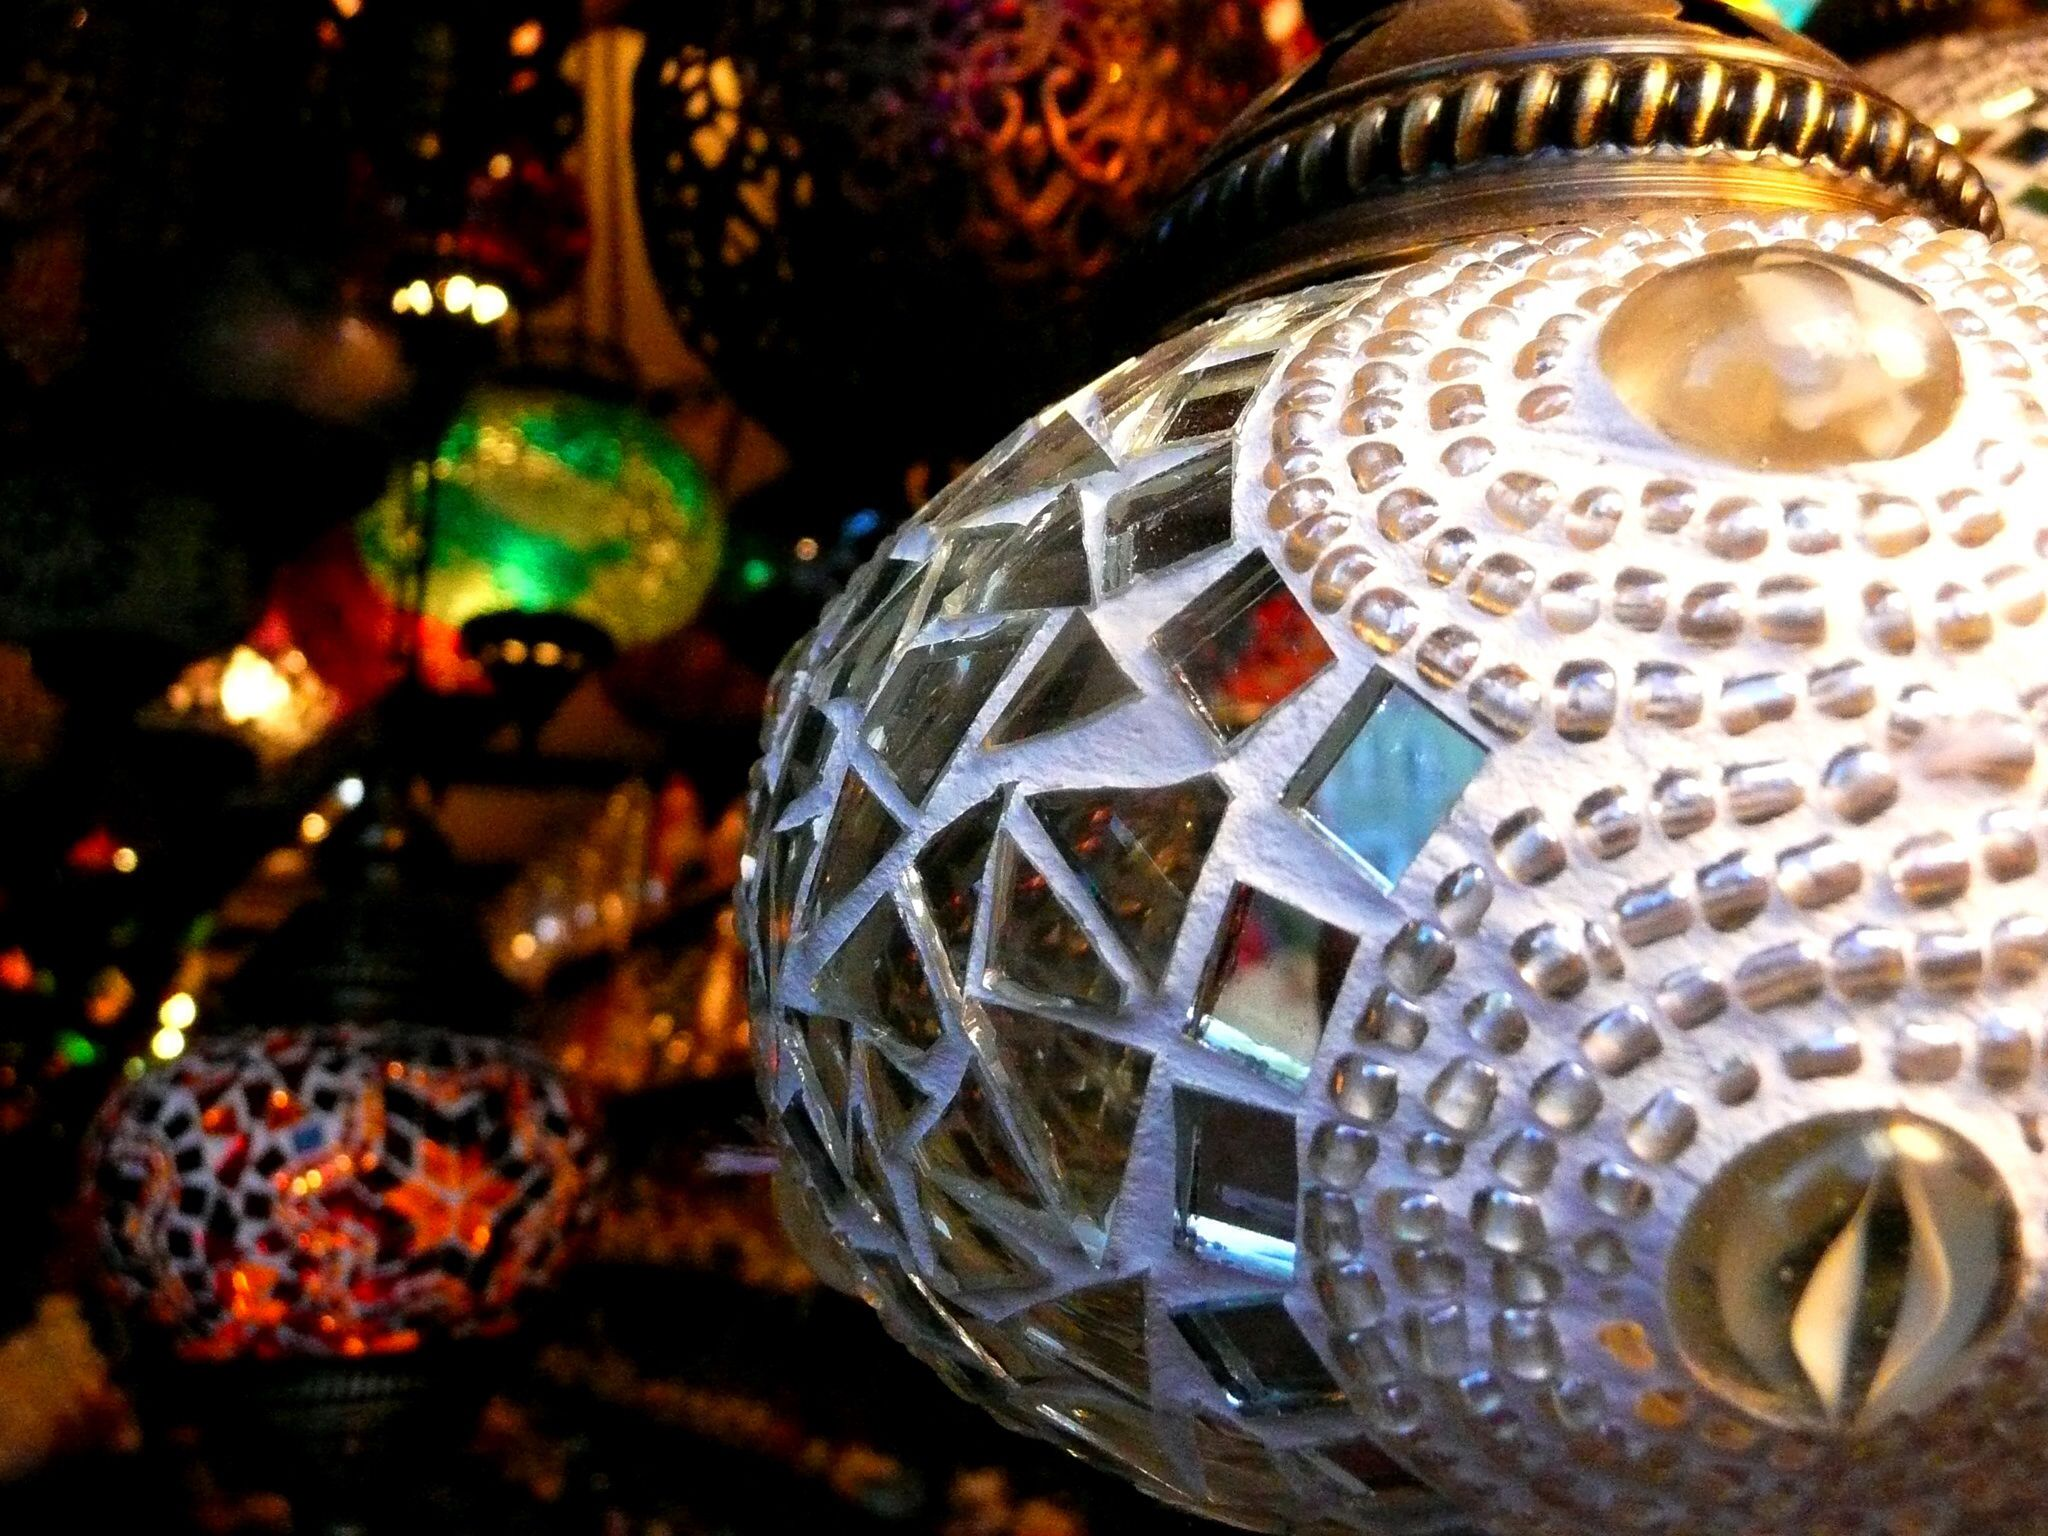 Lamps in Istanbul markets